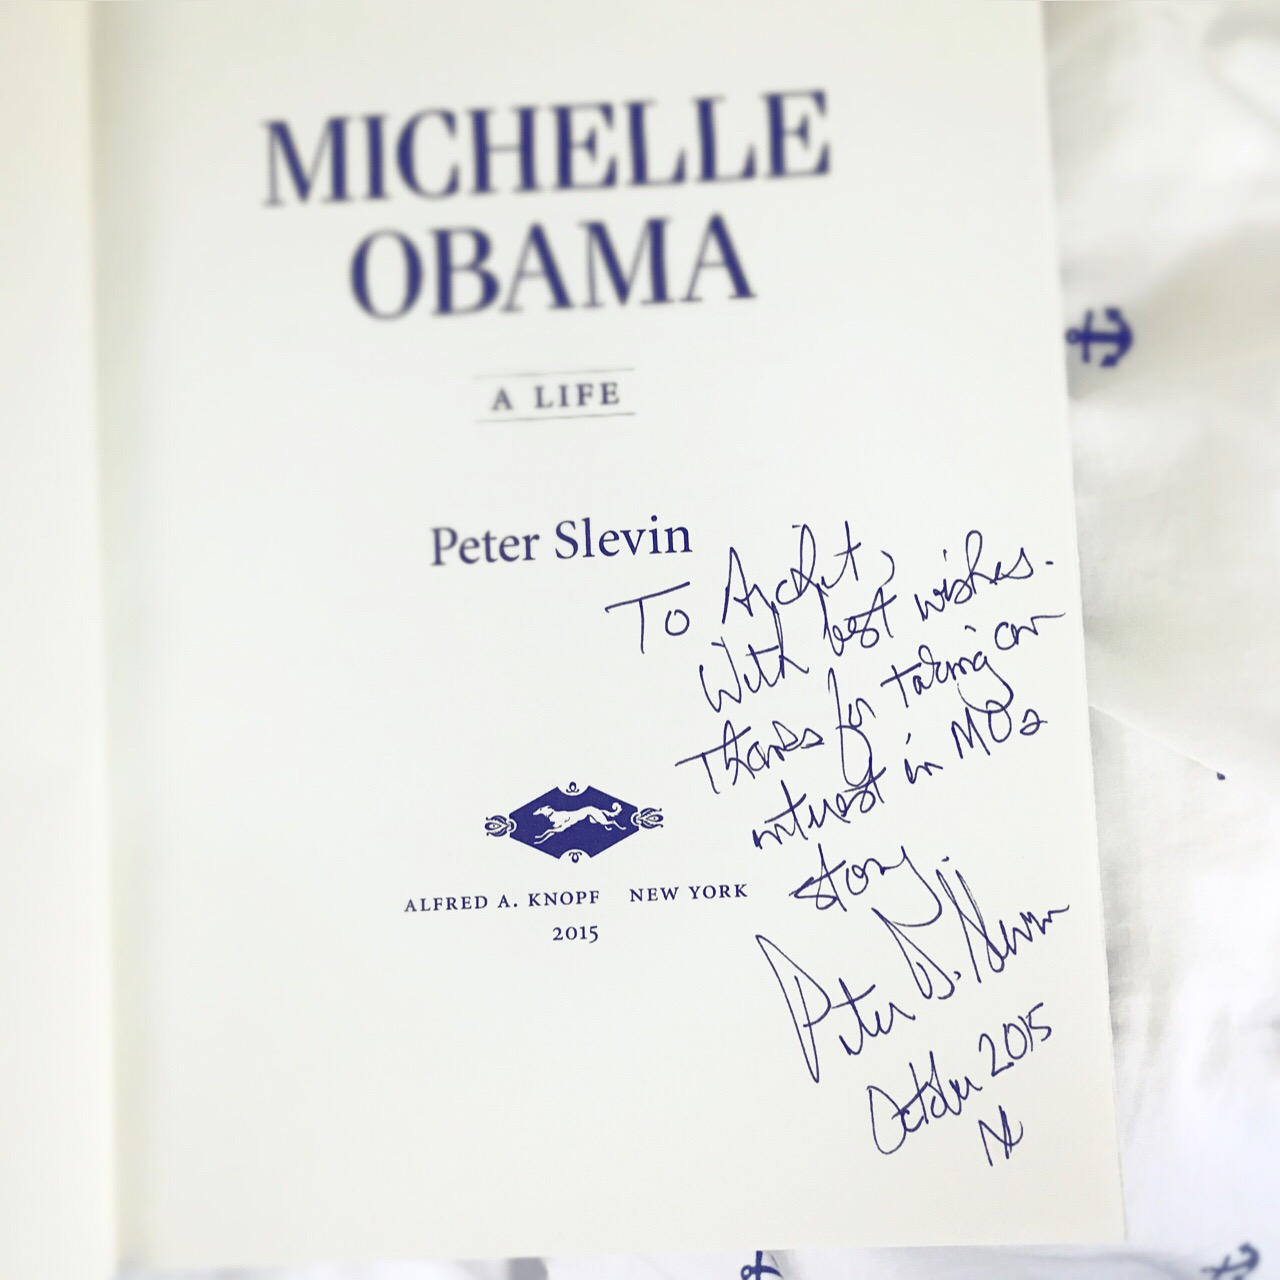 Peter signed my book!